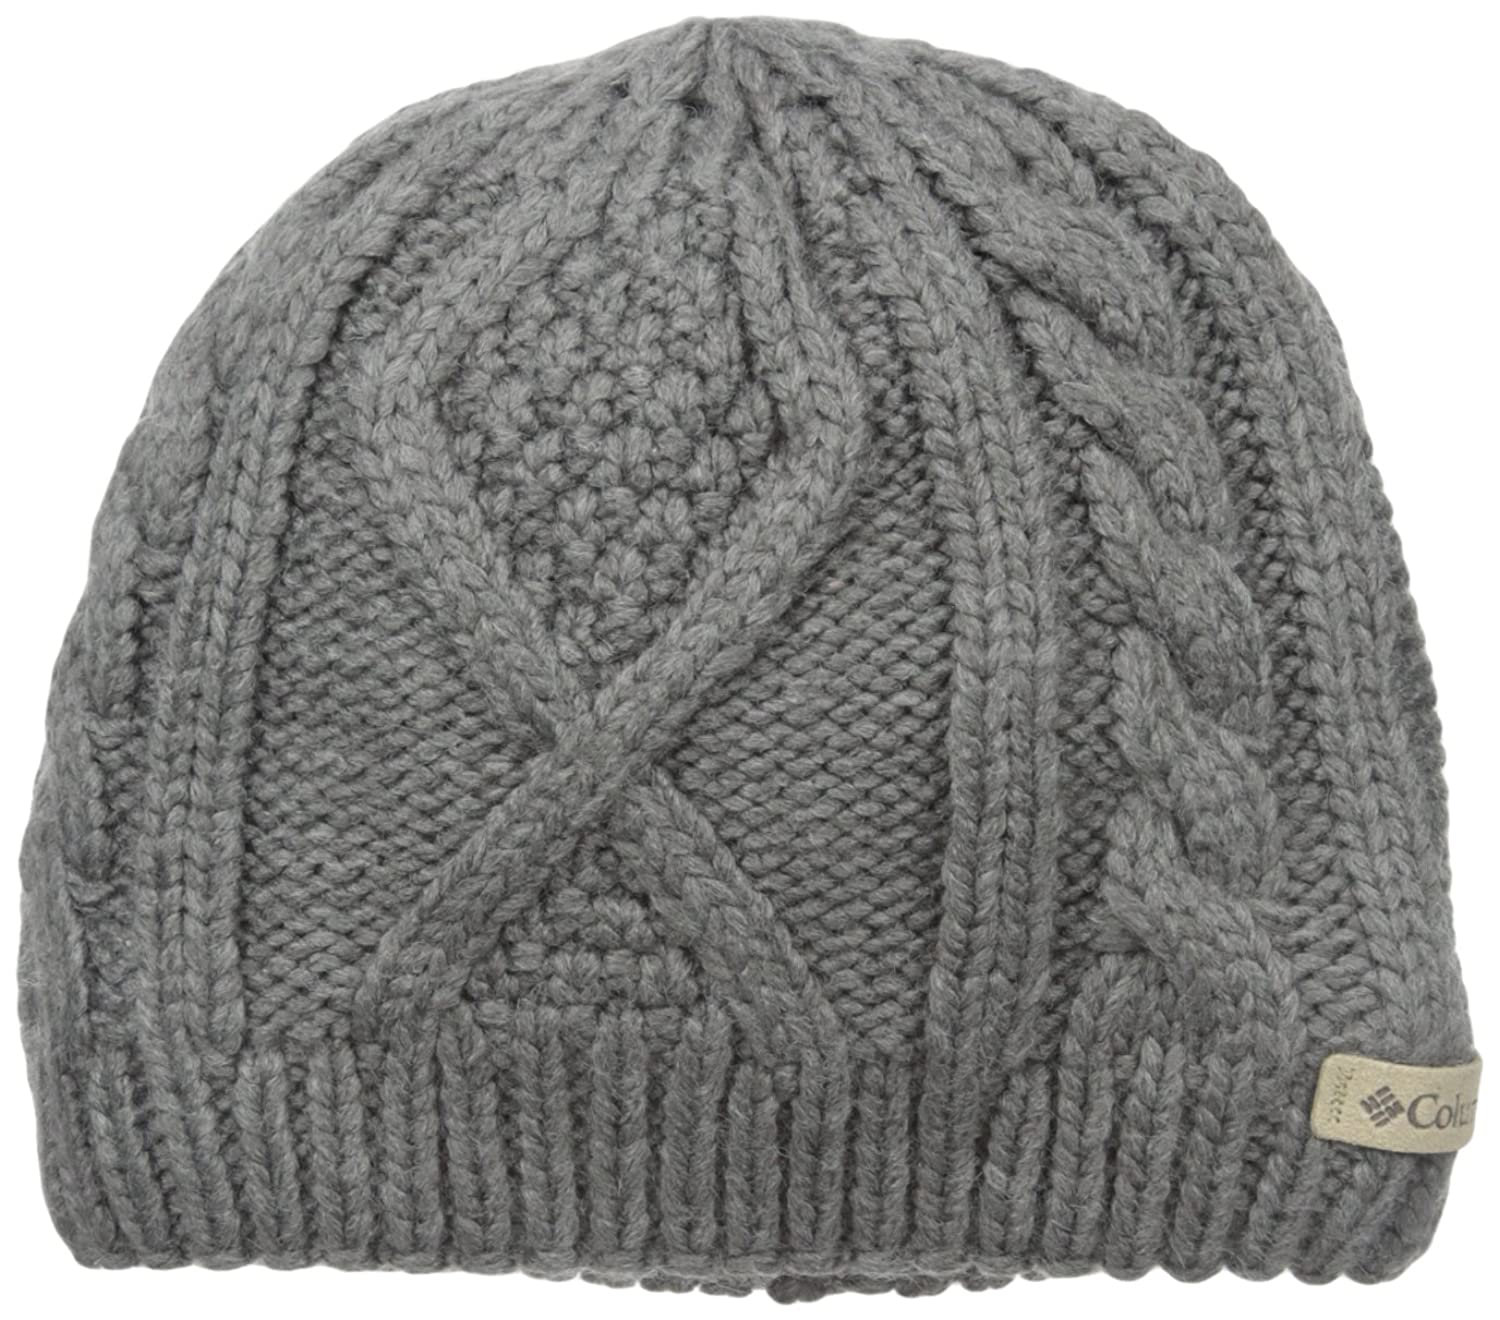 4348c87e3c5 Columbia Boys  Youth Cable Cutie Beanie  5KvYY0913792  -  11.99